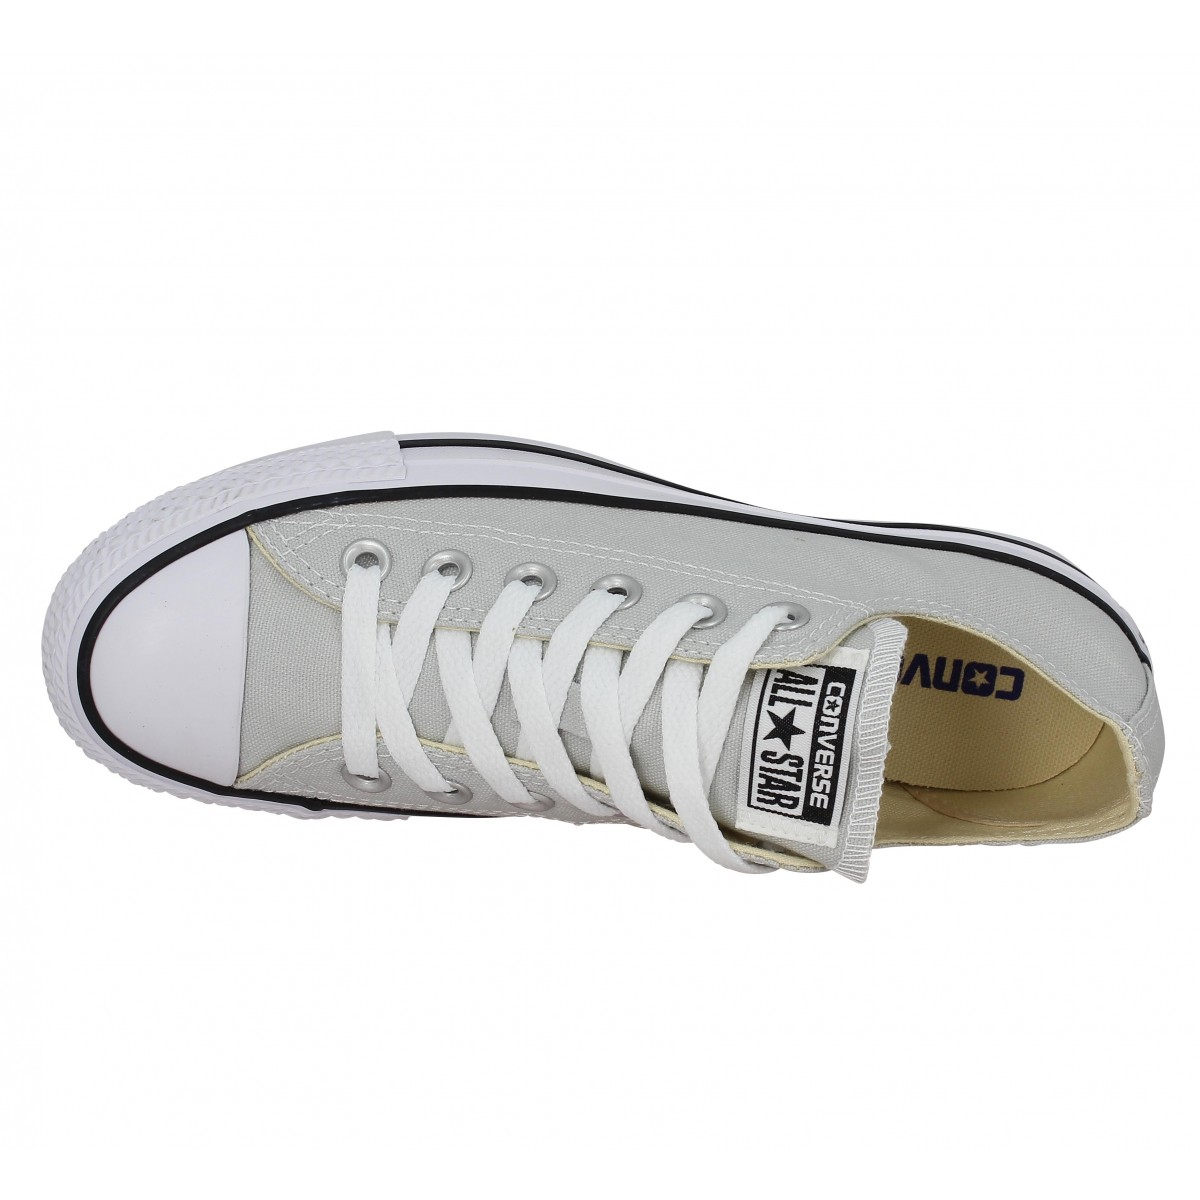 CONVERSE Chuck Taylor All Star toile Femme Mousse